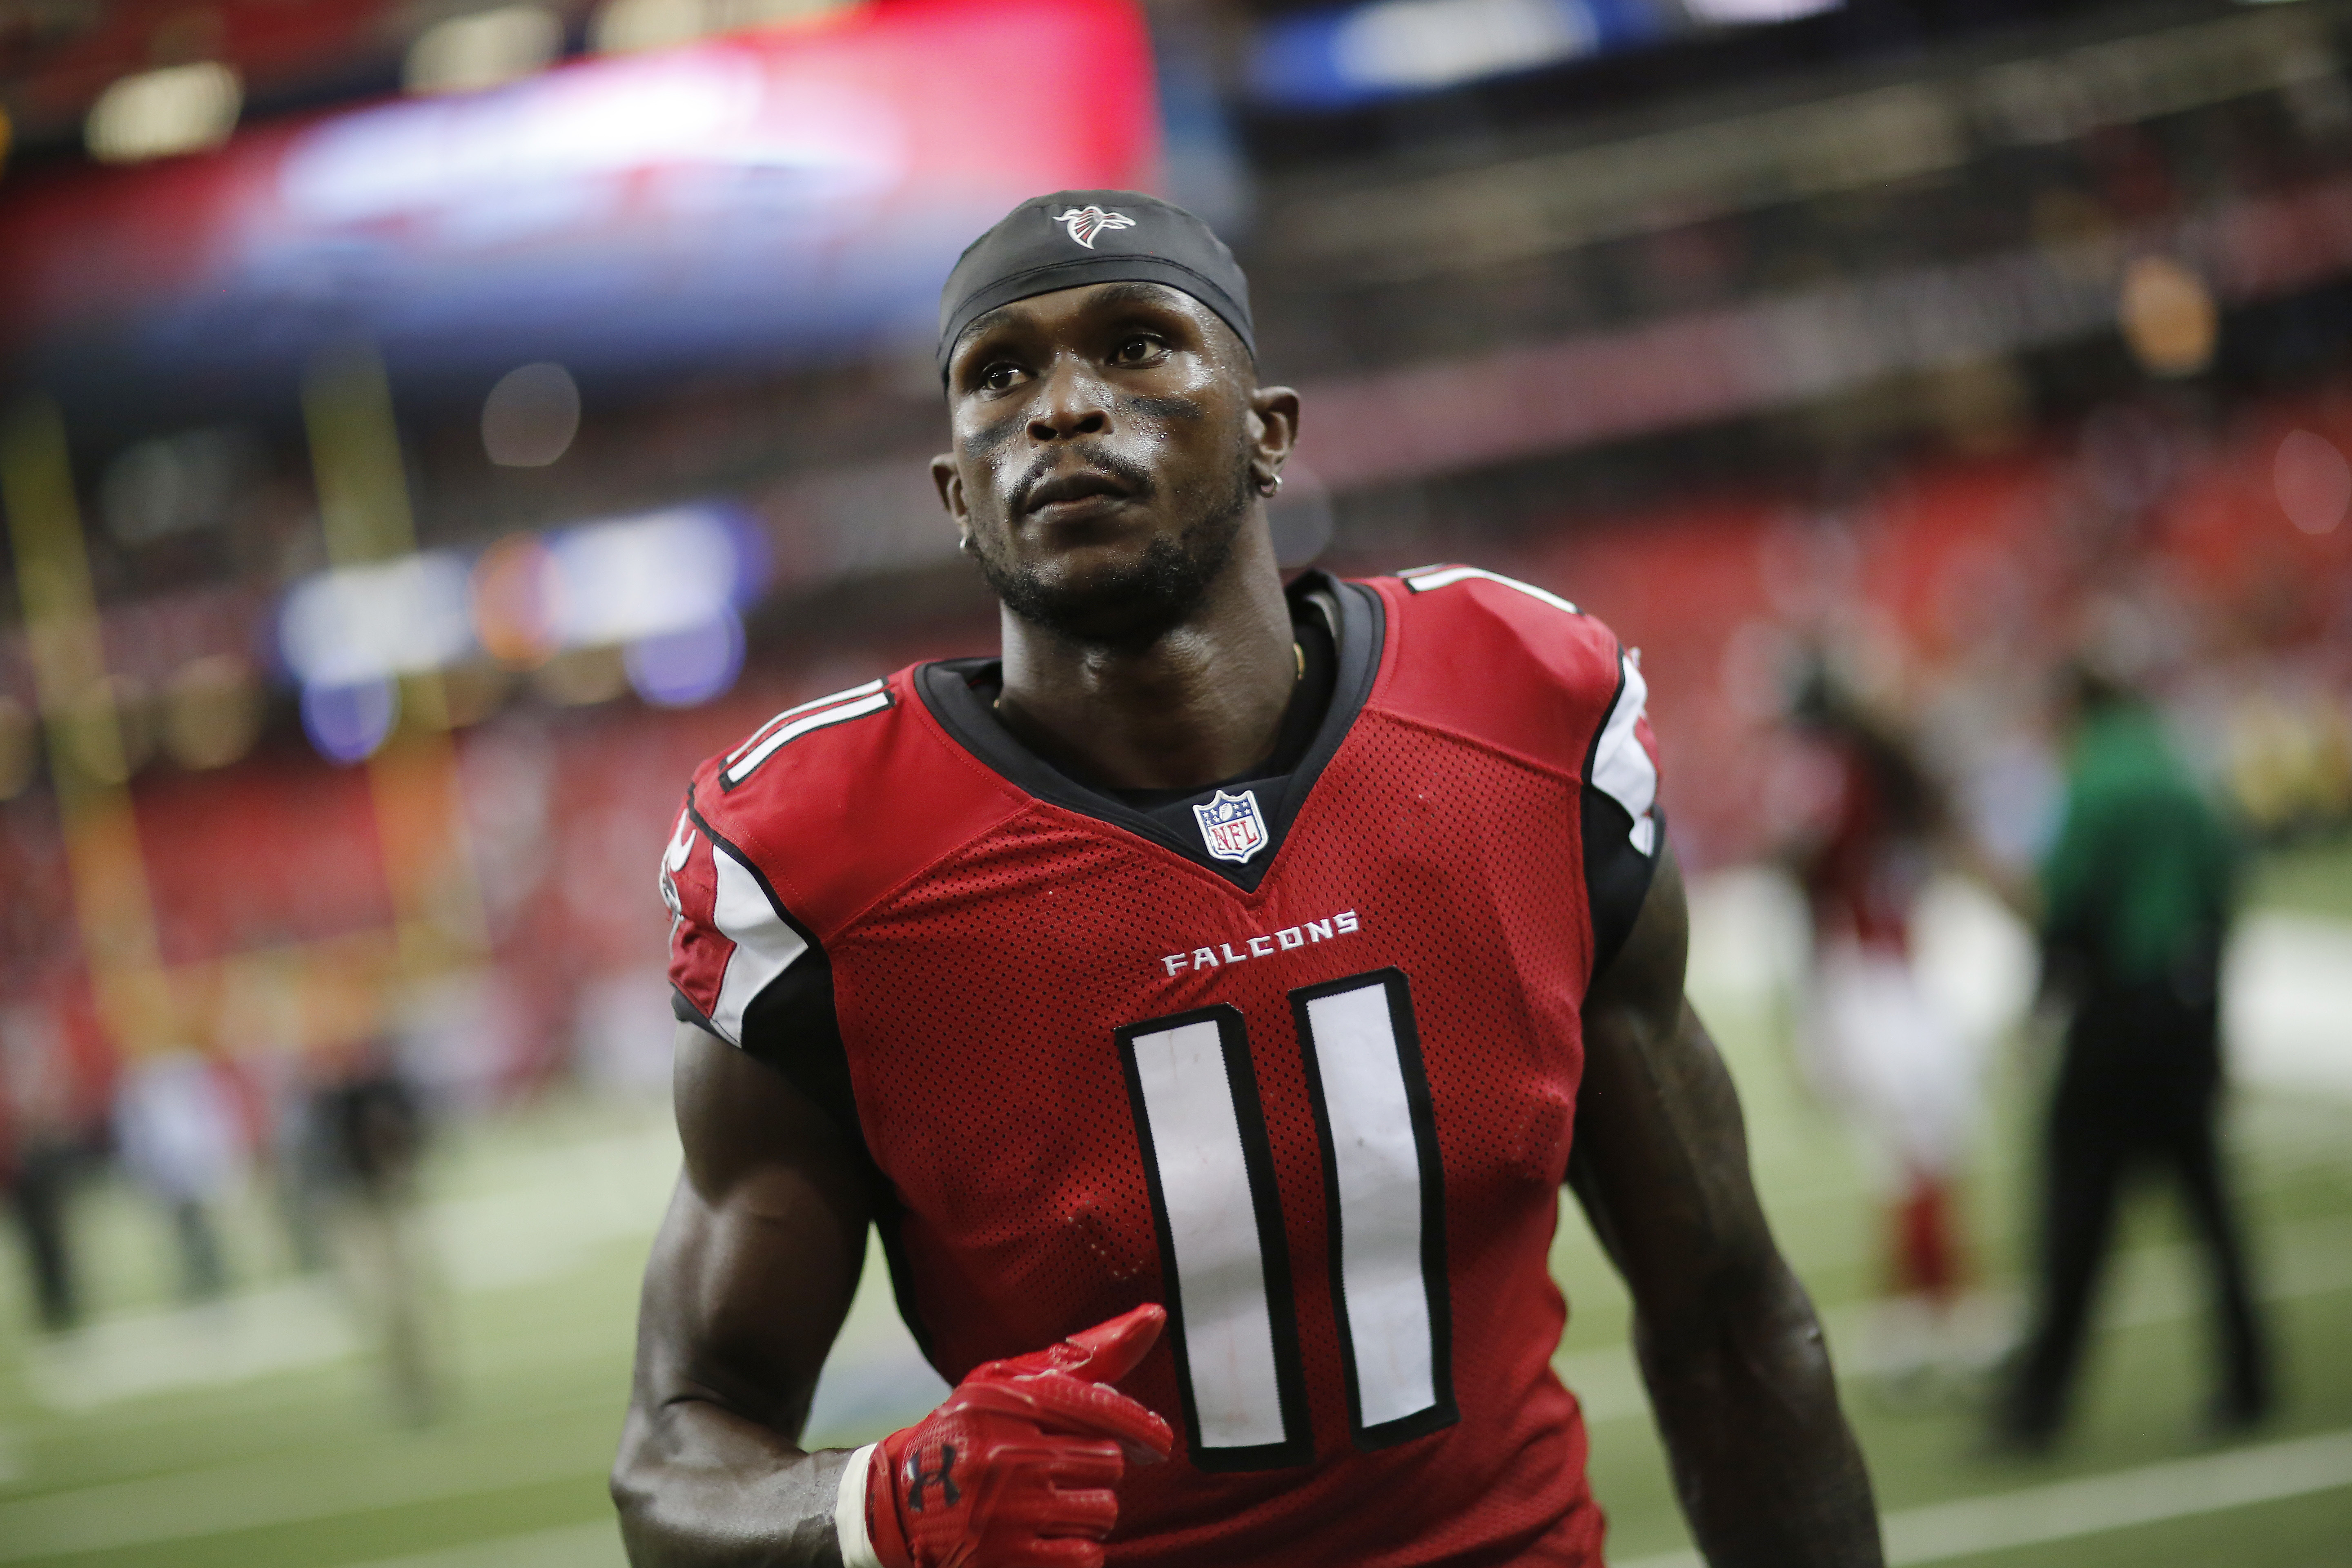 Atlanta Falcons wide receiver Julio Jones walks off the field after an NFL football game against the Tampa Bay Buccaneers, Sunday, Sept. 11, 2016, in Atlanta. The Tampa Bay Buccaneers won 31-24.(AP Photo/David Goldman)